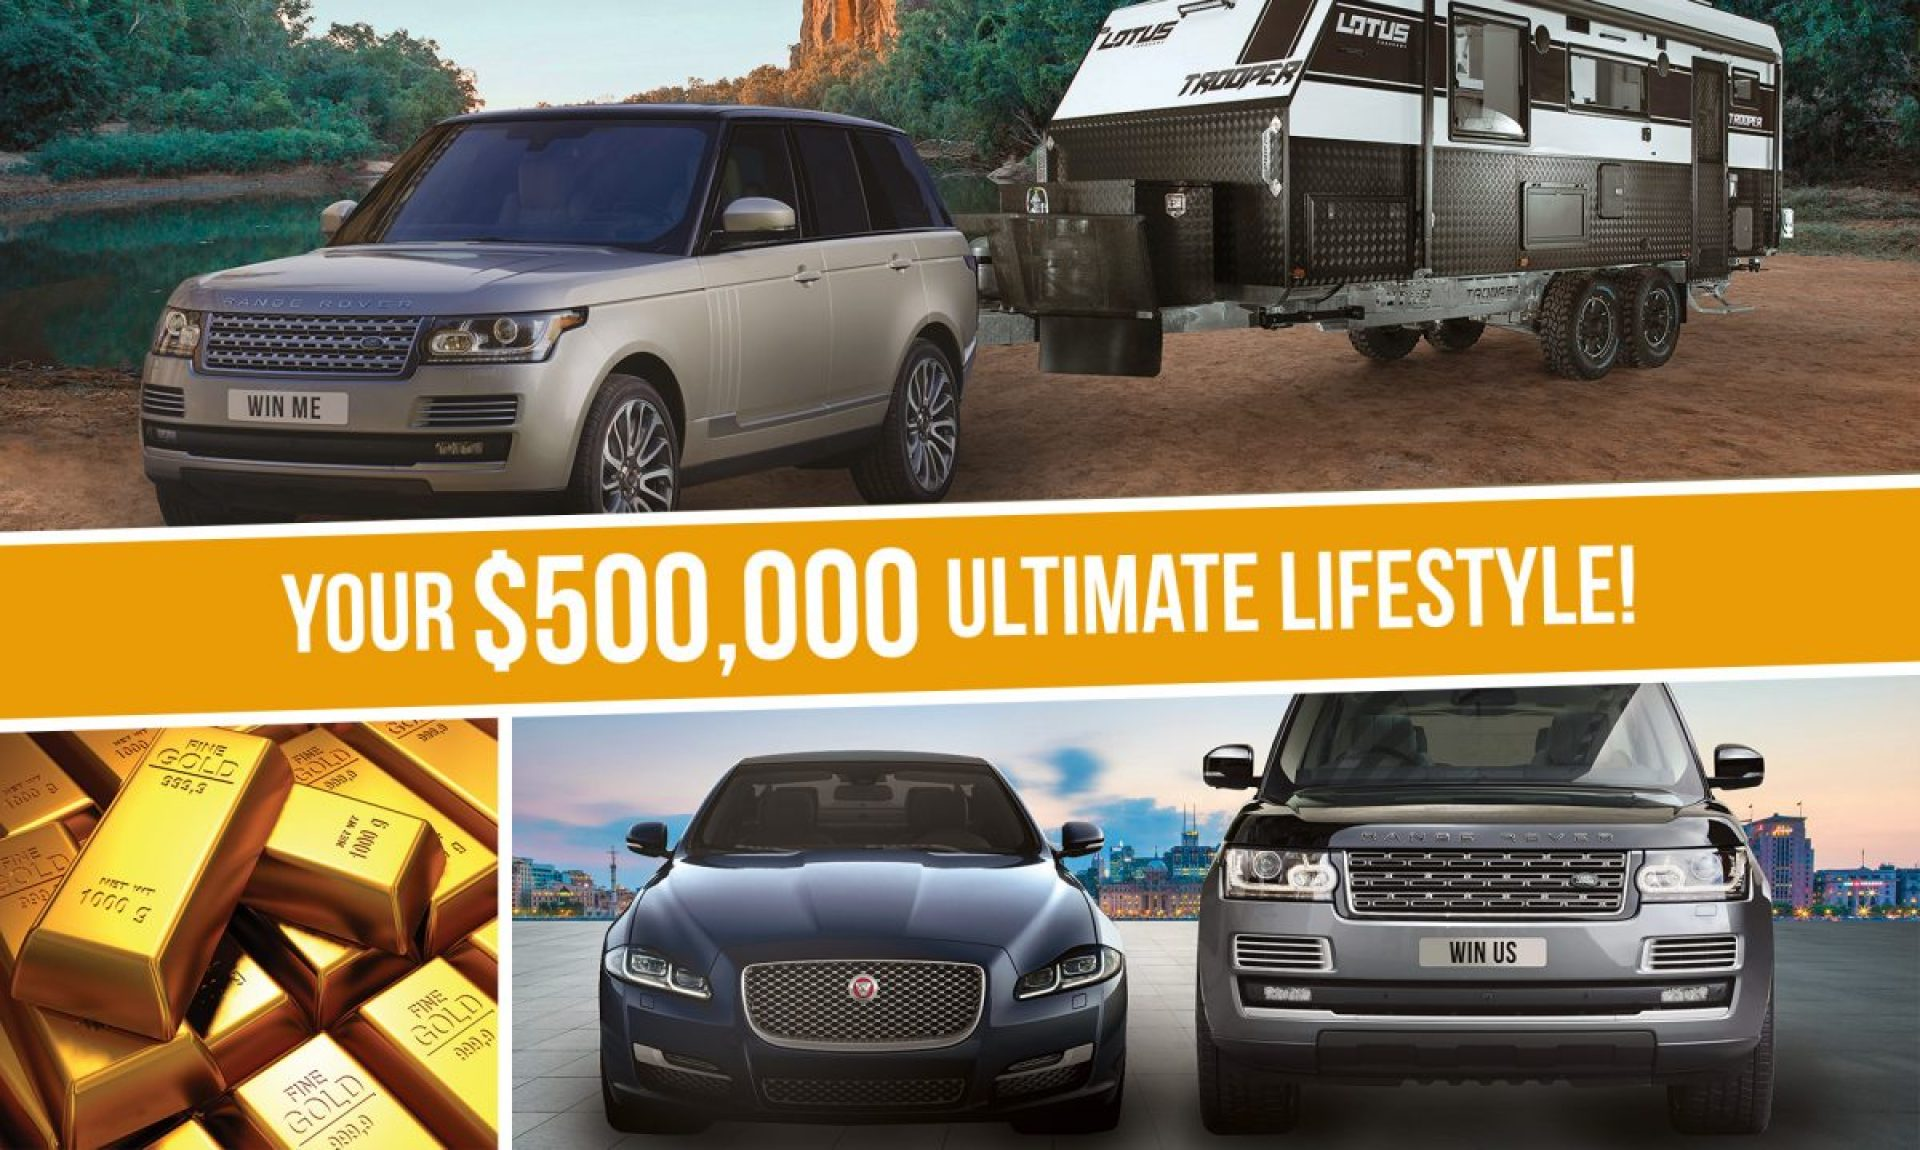 Choose your $500 000 Ultimate Lifestyle